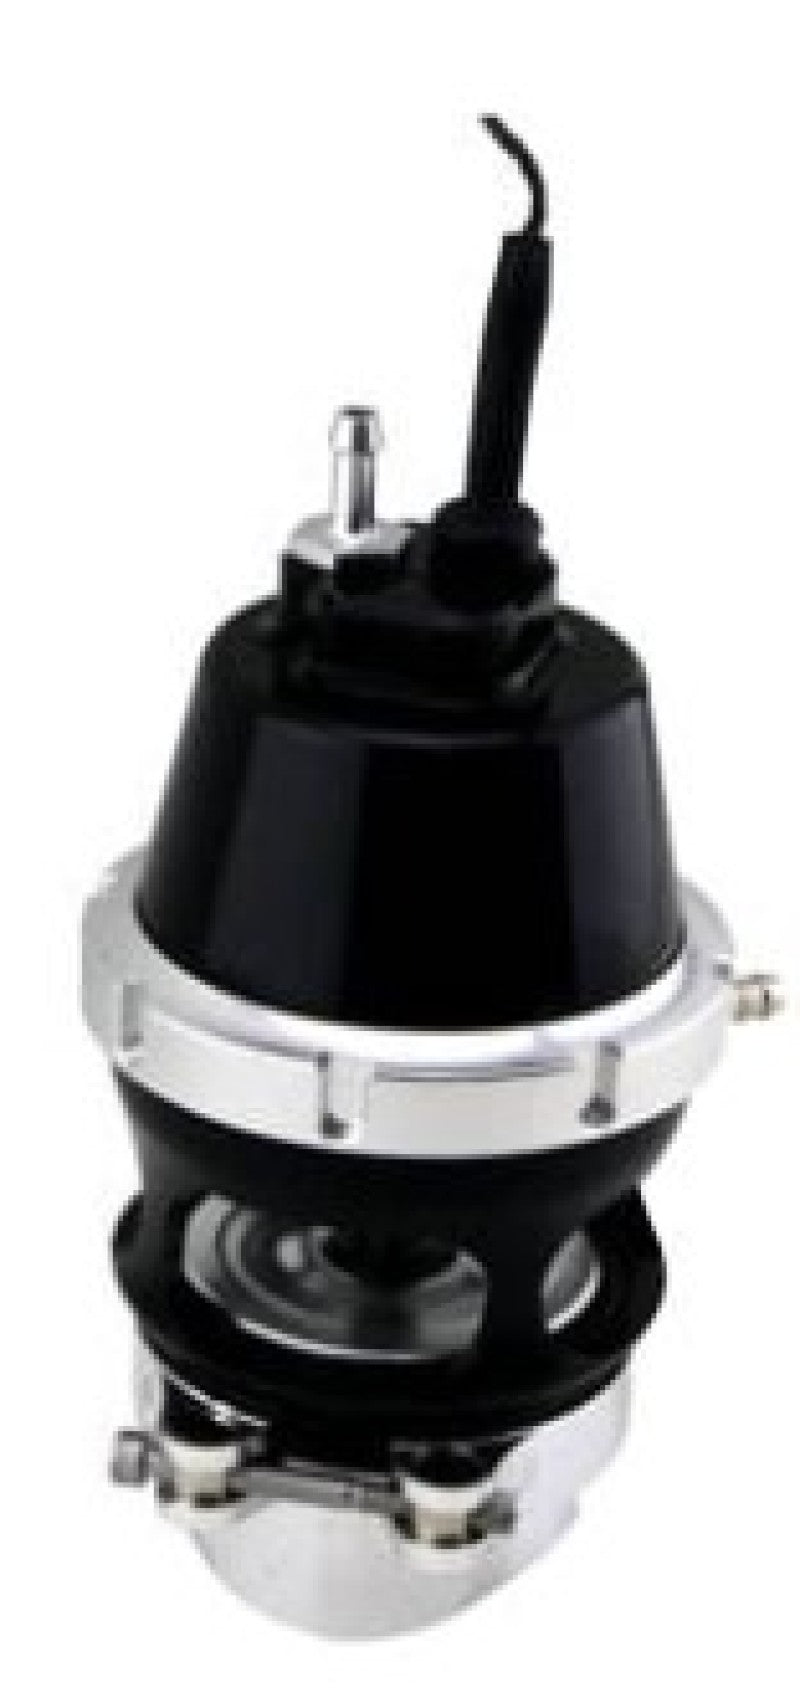 Turbosmart BOV Power Port w/ Sensor Cap - Black